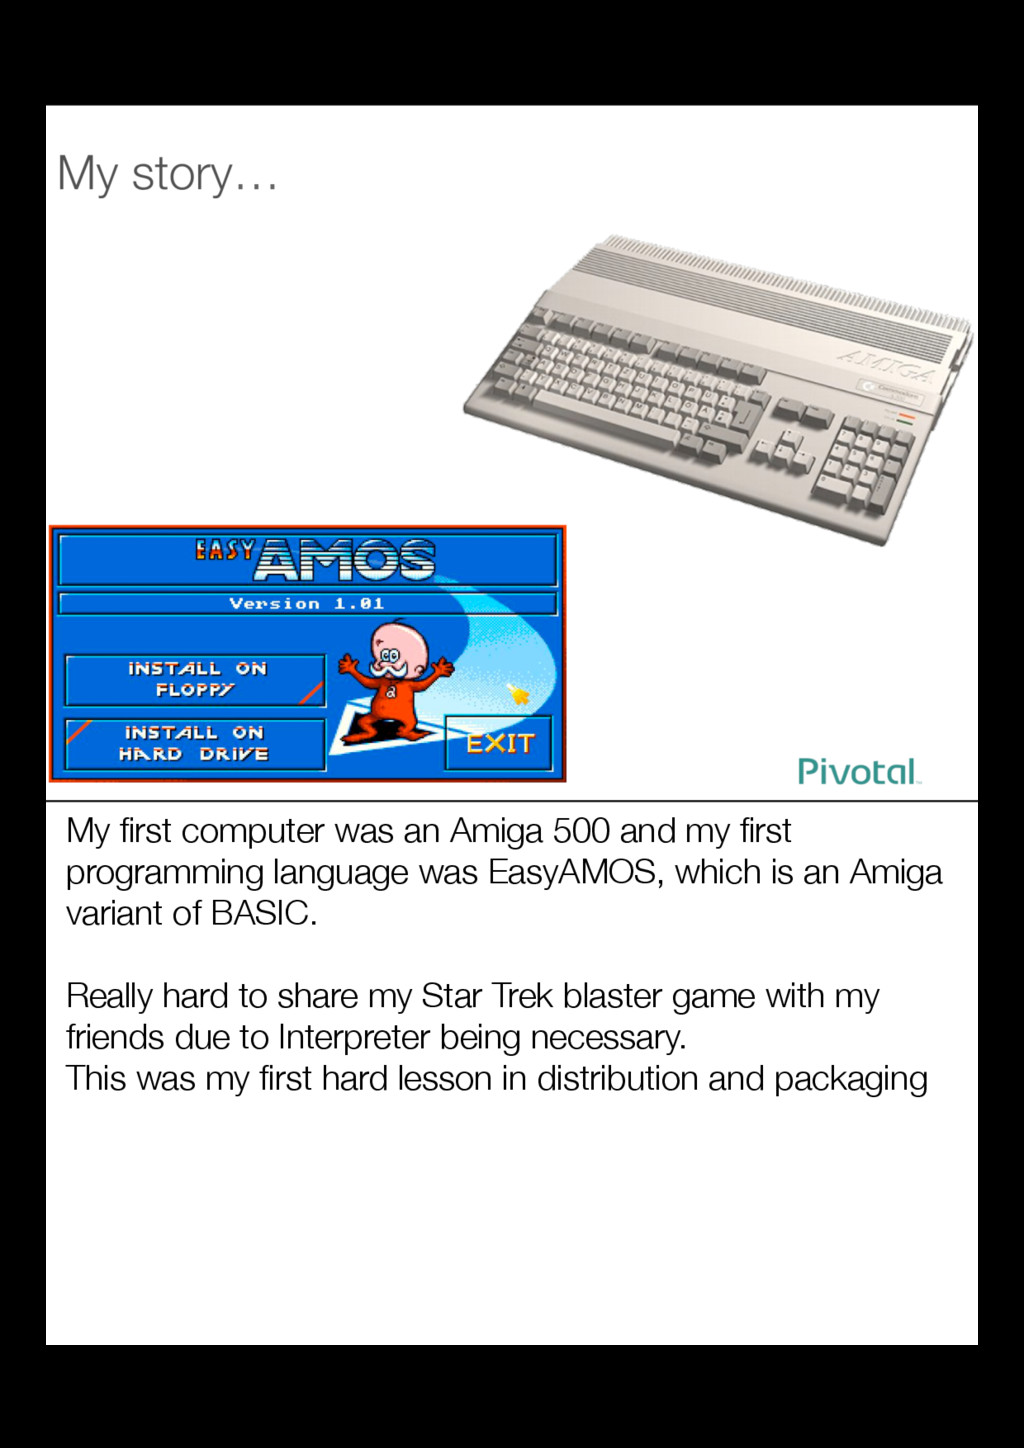 My first computer was an Amiga 500 and my first p...